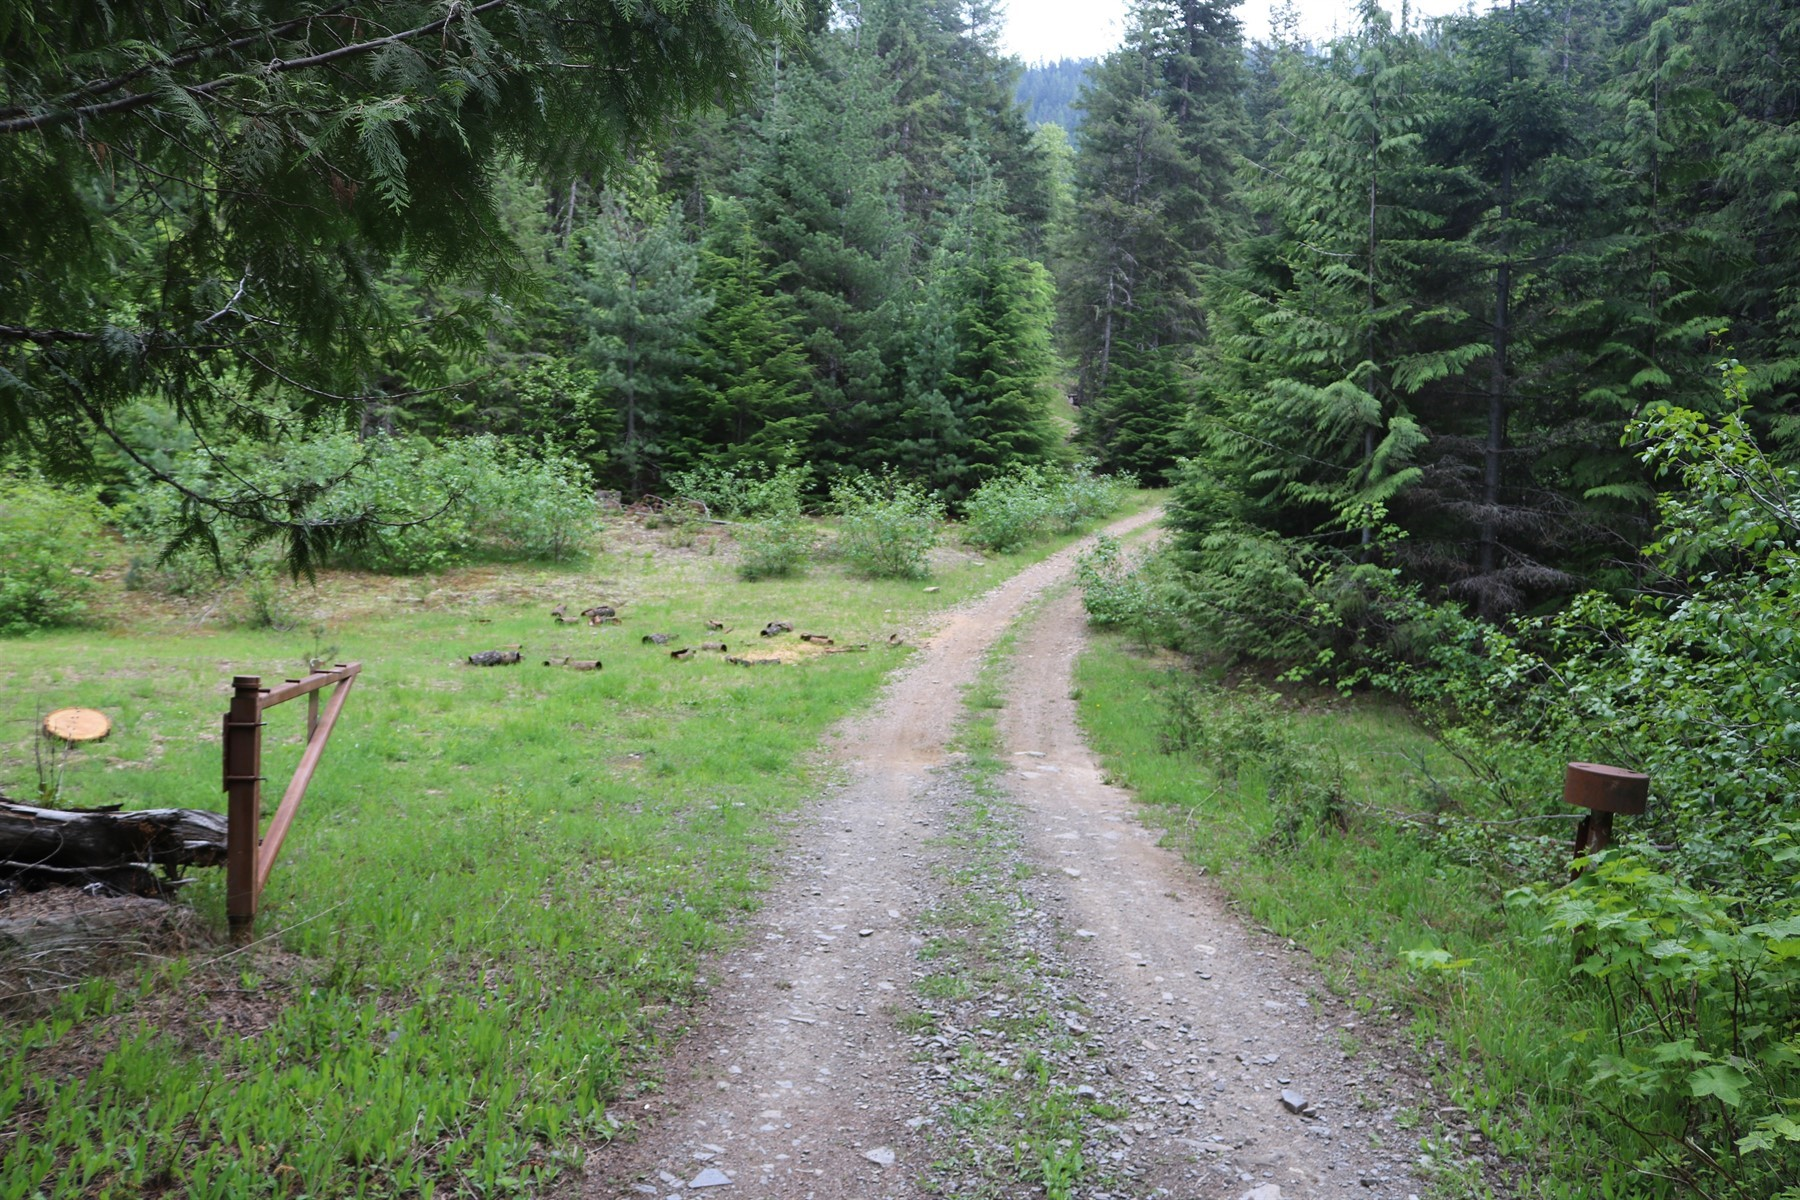 Land for Sale at Western Adventure No 2 5a Lakeview Cutoff Rd Lakeview, Idaho 83803 United States